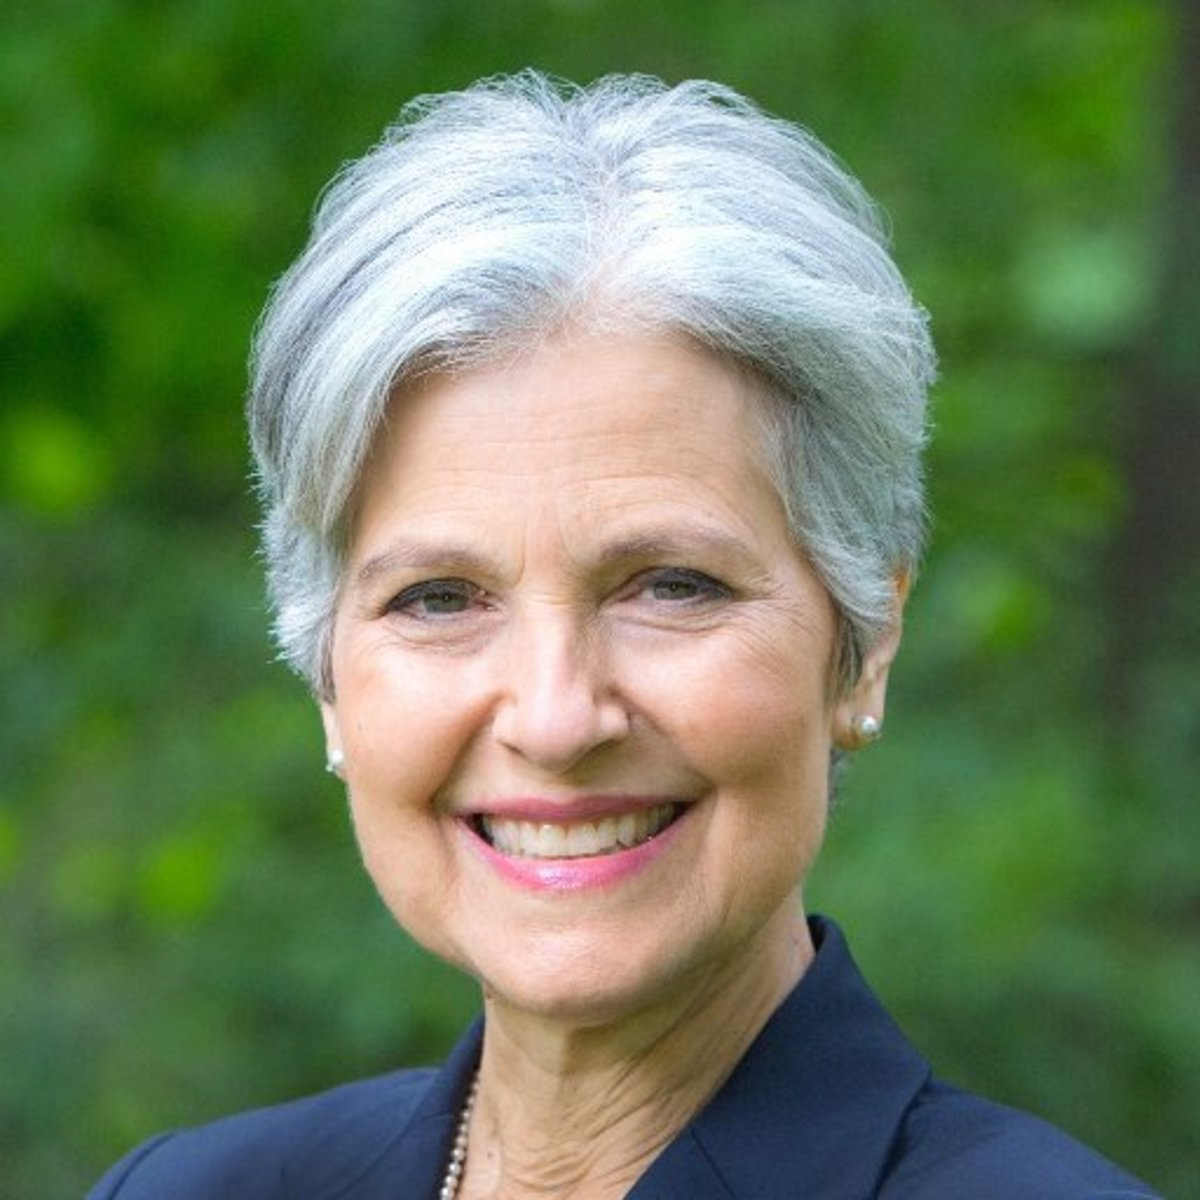 Why Doesn't Jill Stein Propose the Solution to the Election Integrity Problem? We Know What It Is.